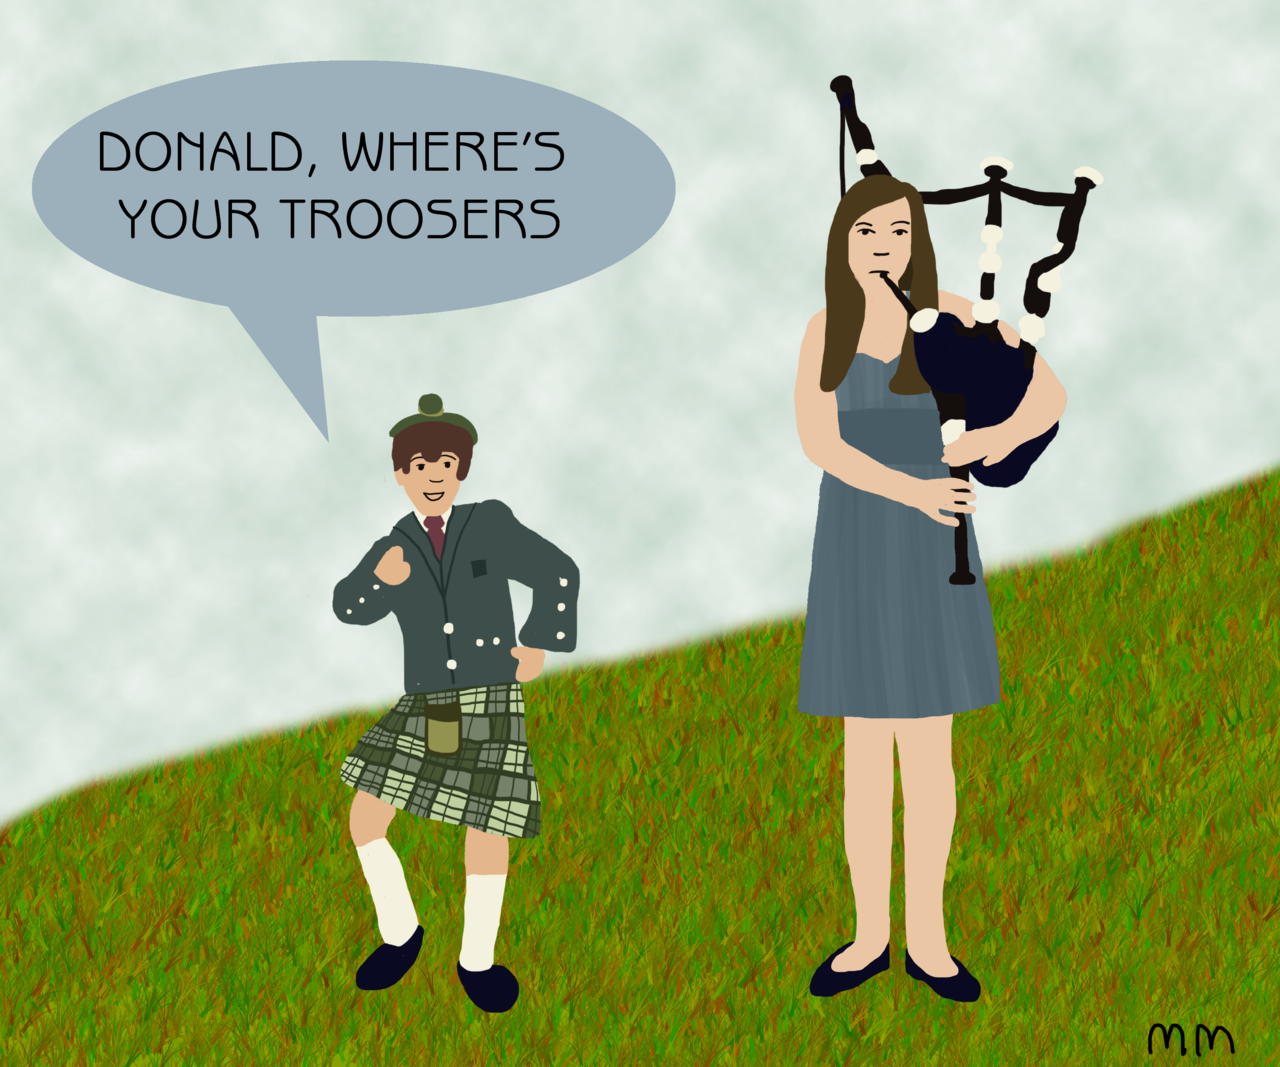 flamingoxboots: Maureen Johnson and a child's Scottish duet. I'm going to reblog some of this amazing art. You know this one stole my heart. Hey, I rhymed!